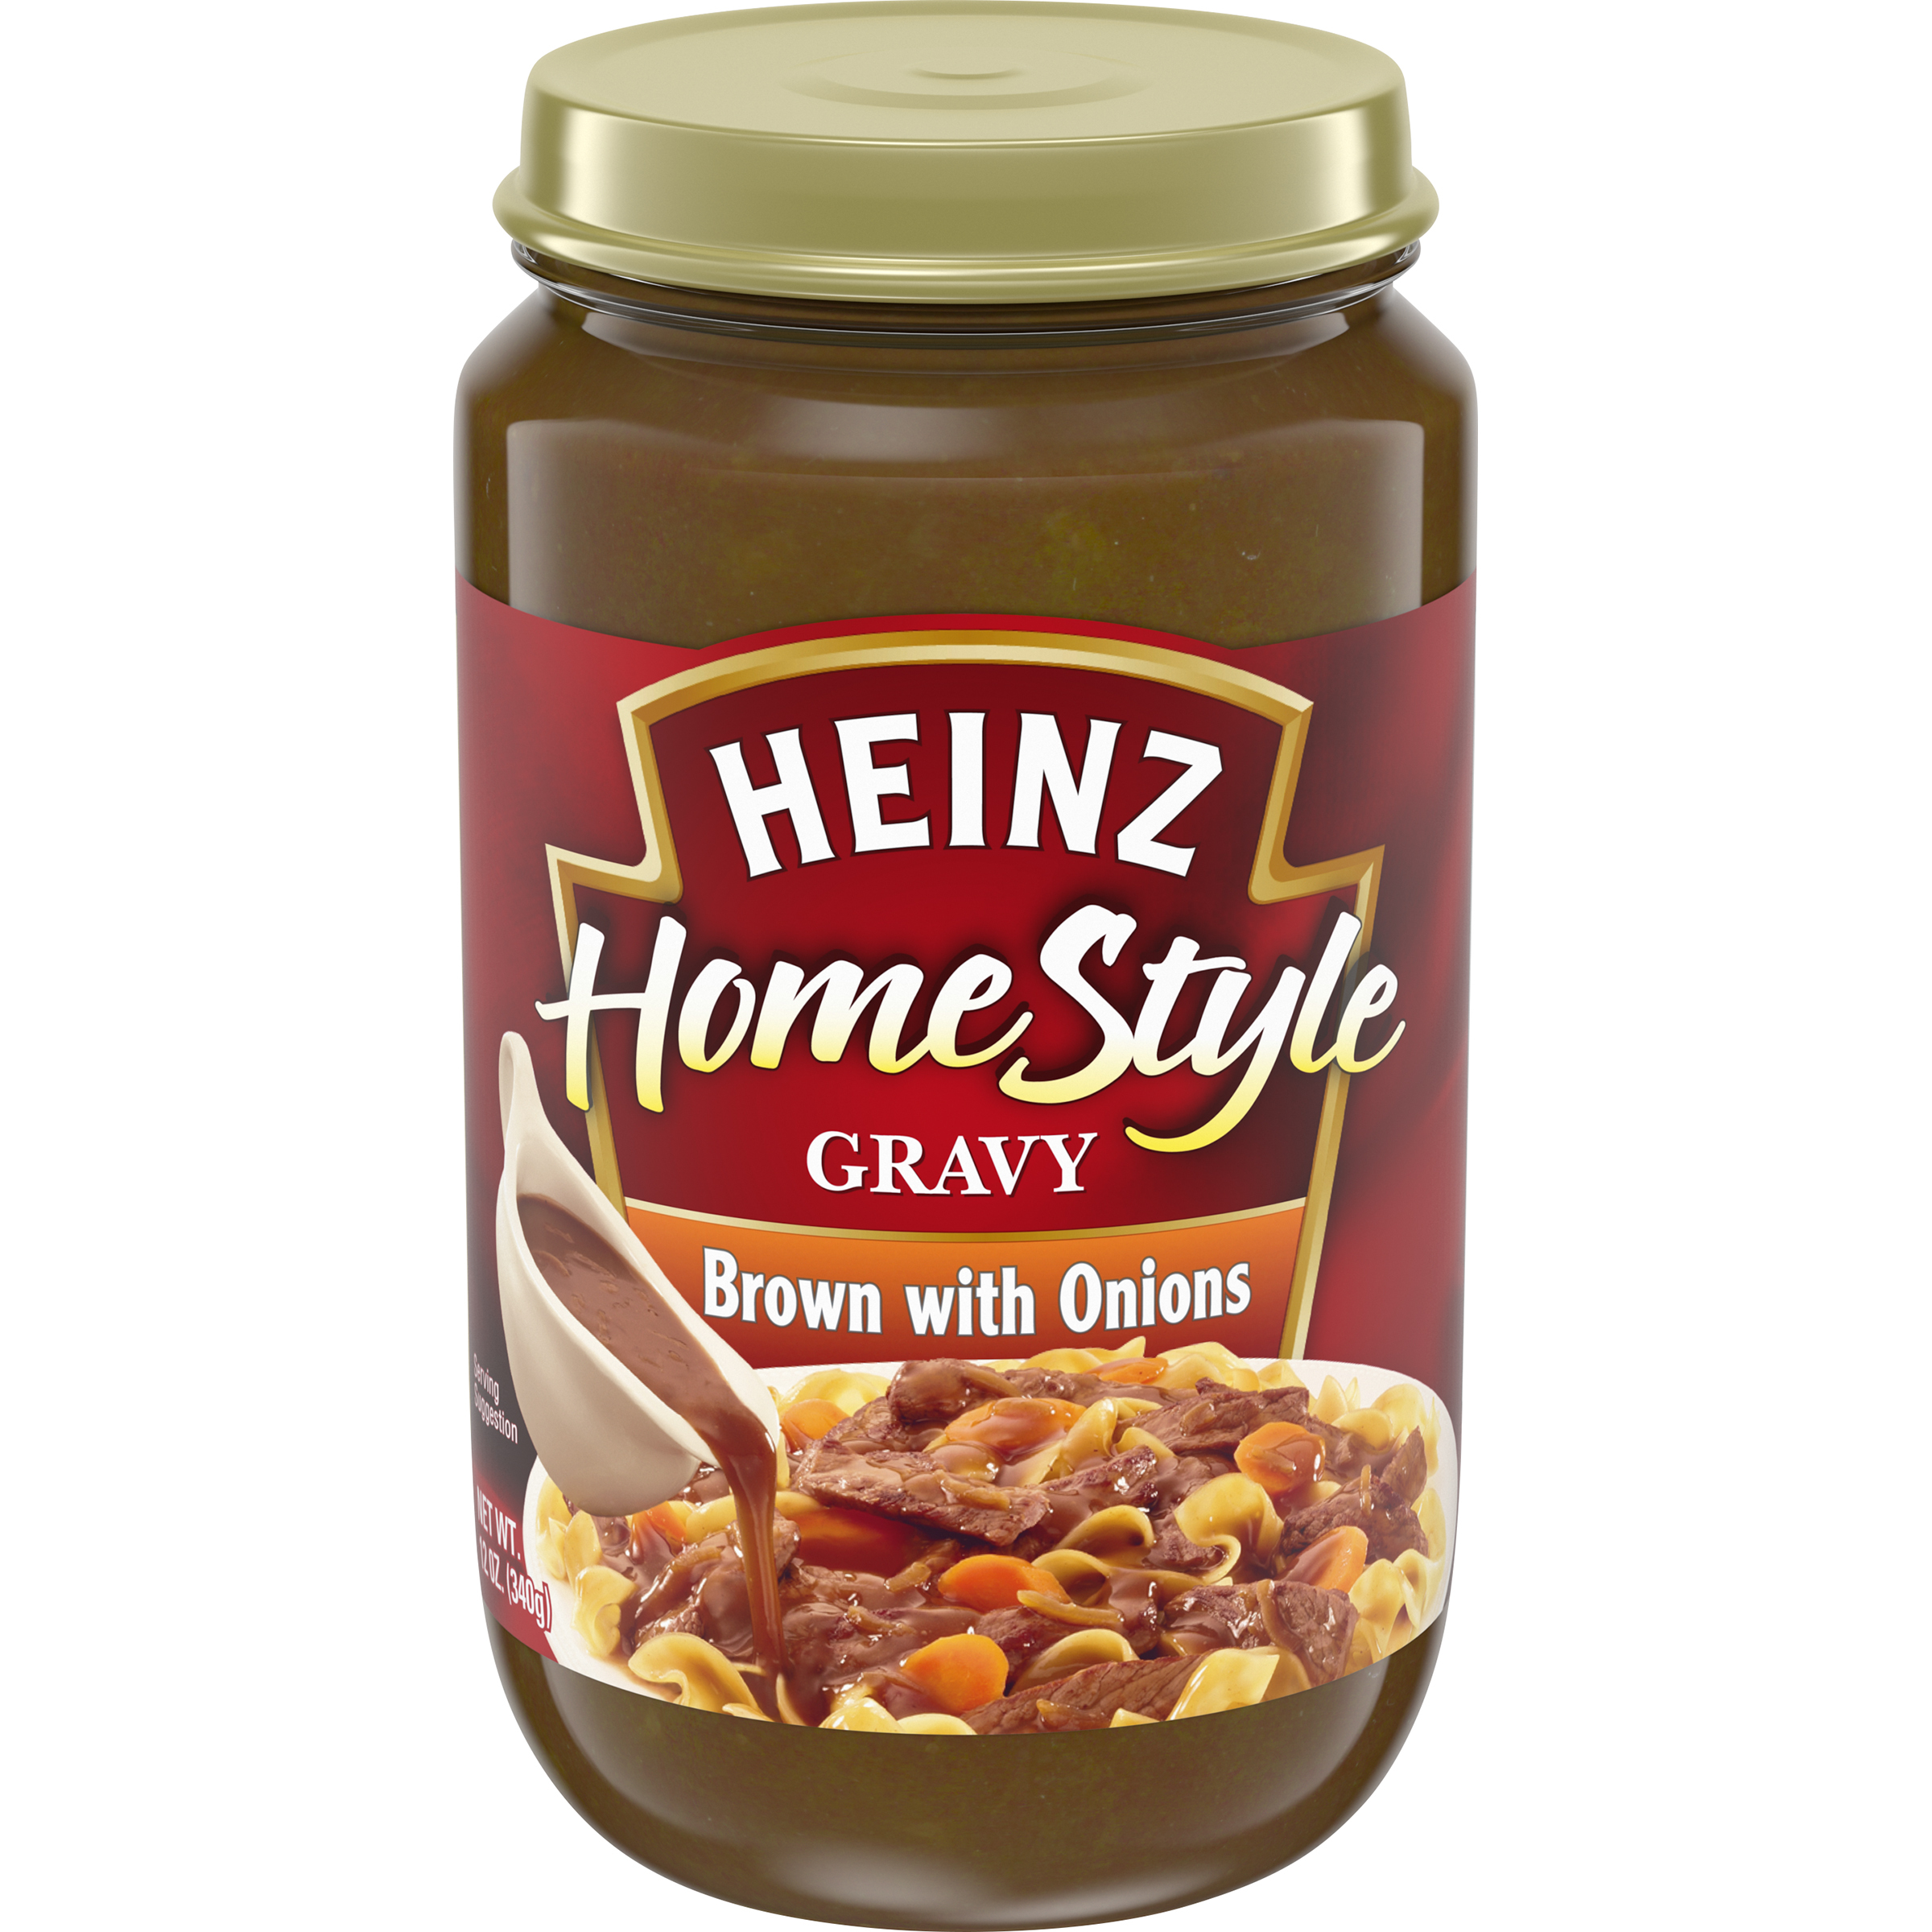 Heniz(r) Home Style Brown with Onions Gravy 12 oz. Box image